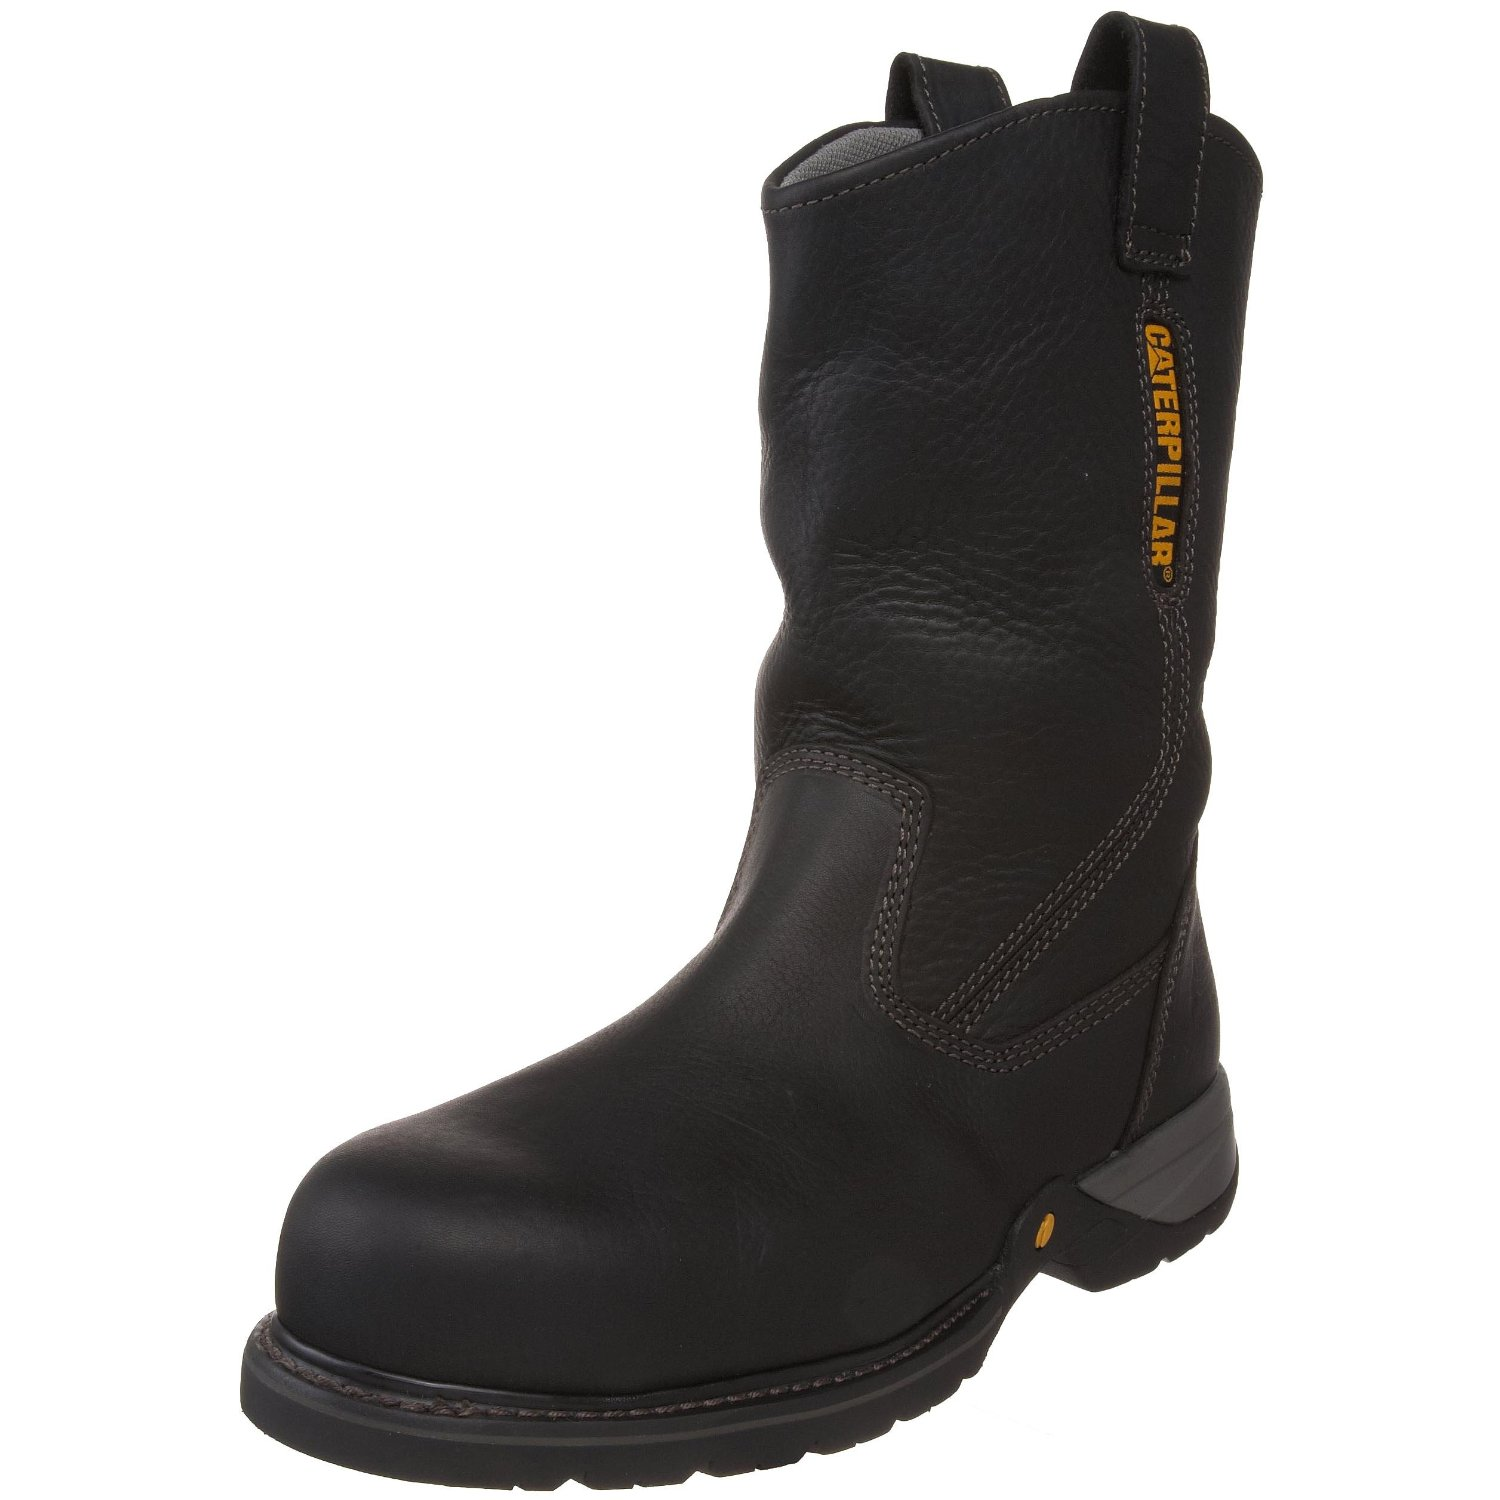 "Caterpillar Mens Caterpillar Gladstone 10"" Steel Toe Work Boots Electrical Hazard Pull On Black (D, M) P89725 at Sears.com"